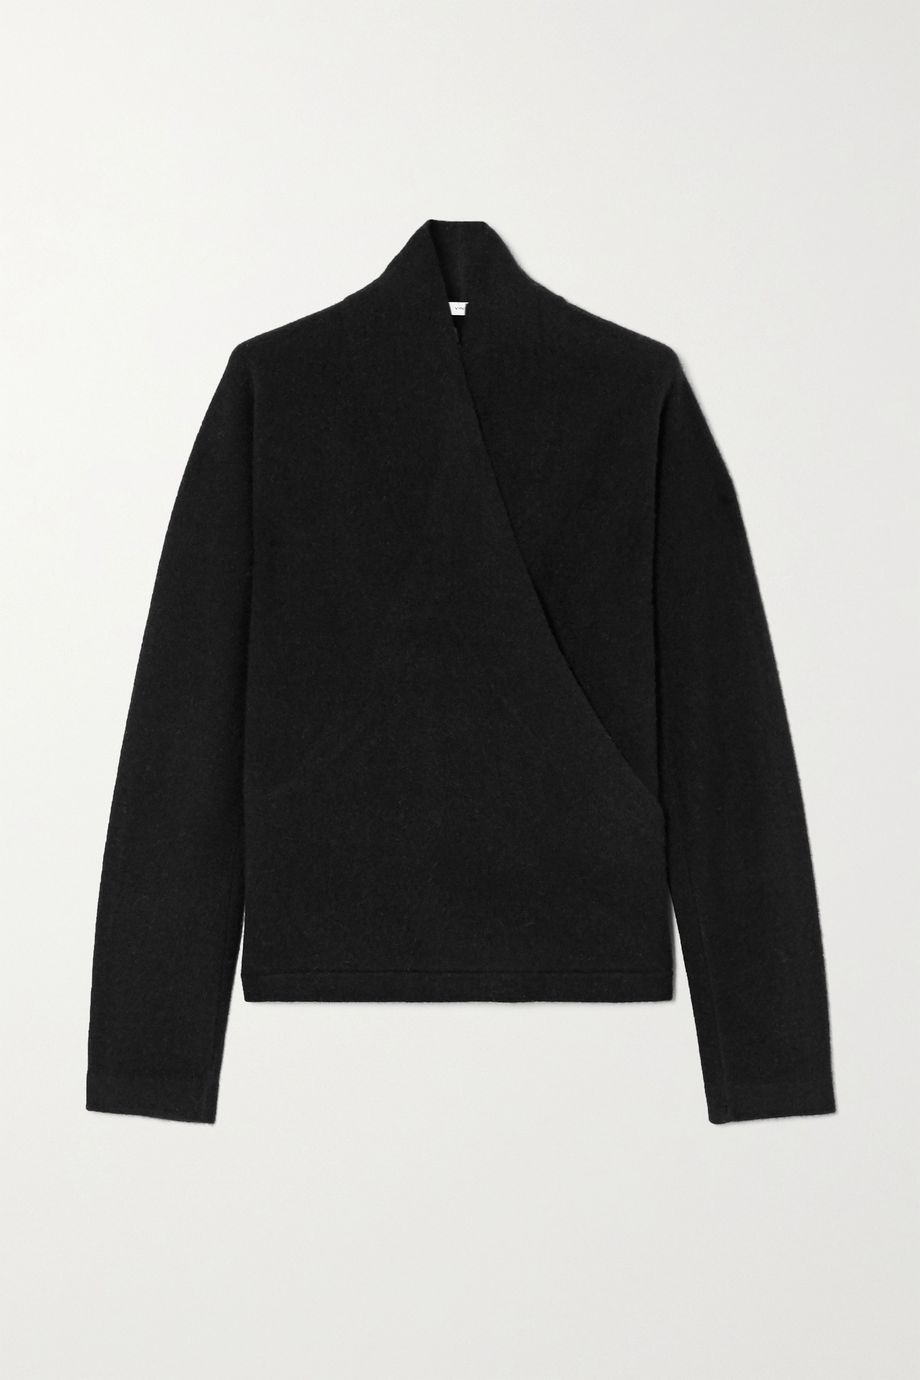 Vince Wrap-effect cashmere sweater